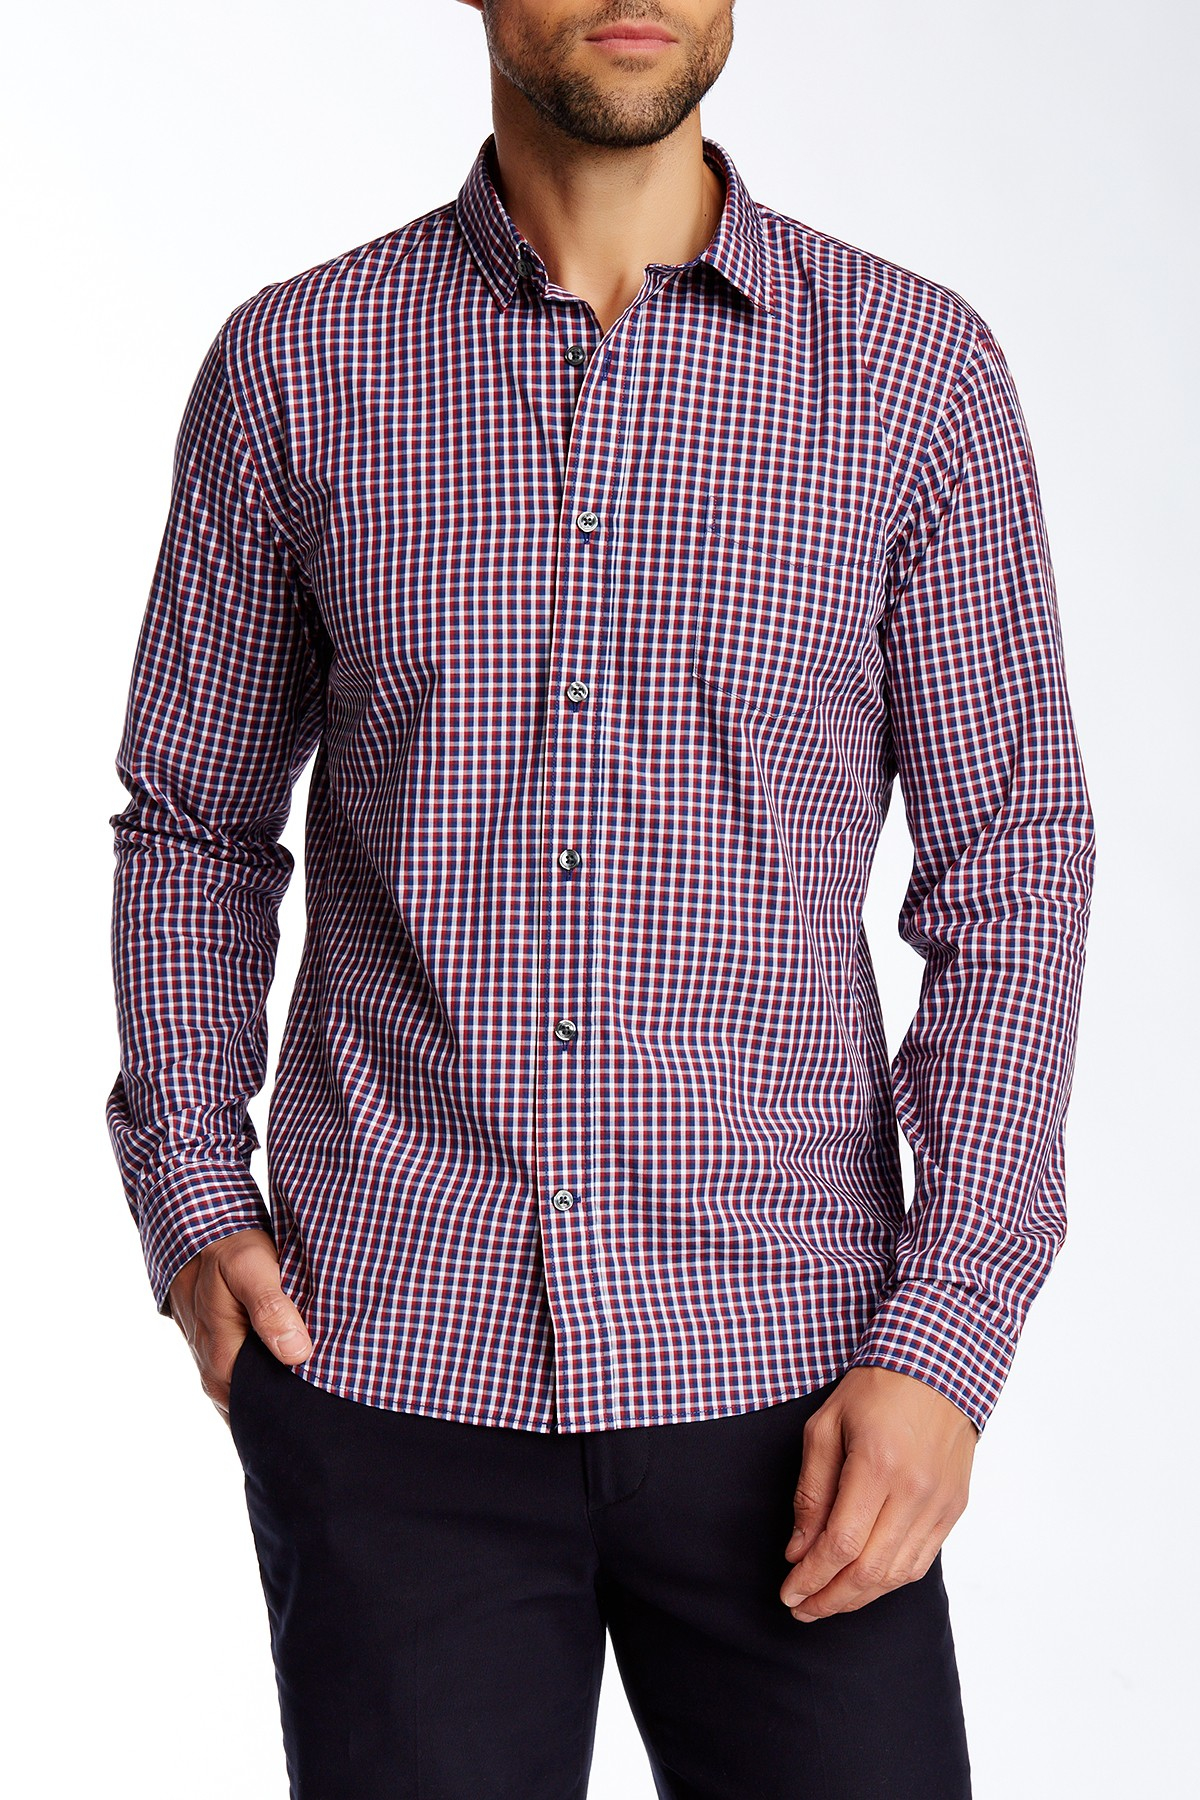 The burgundy plaid on this slim fit dress shirt by Awearness Kenneth Cole is eye-catching yet neutral enough to complement a variety of dress wear ensembles. Made with non-iron cotton it defies wrinkles for carefree all-day wear.